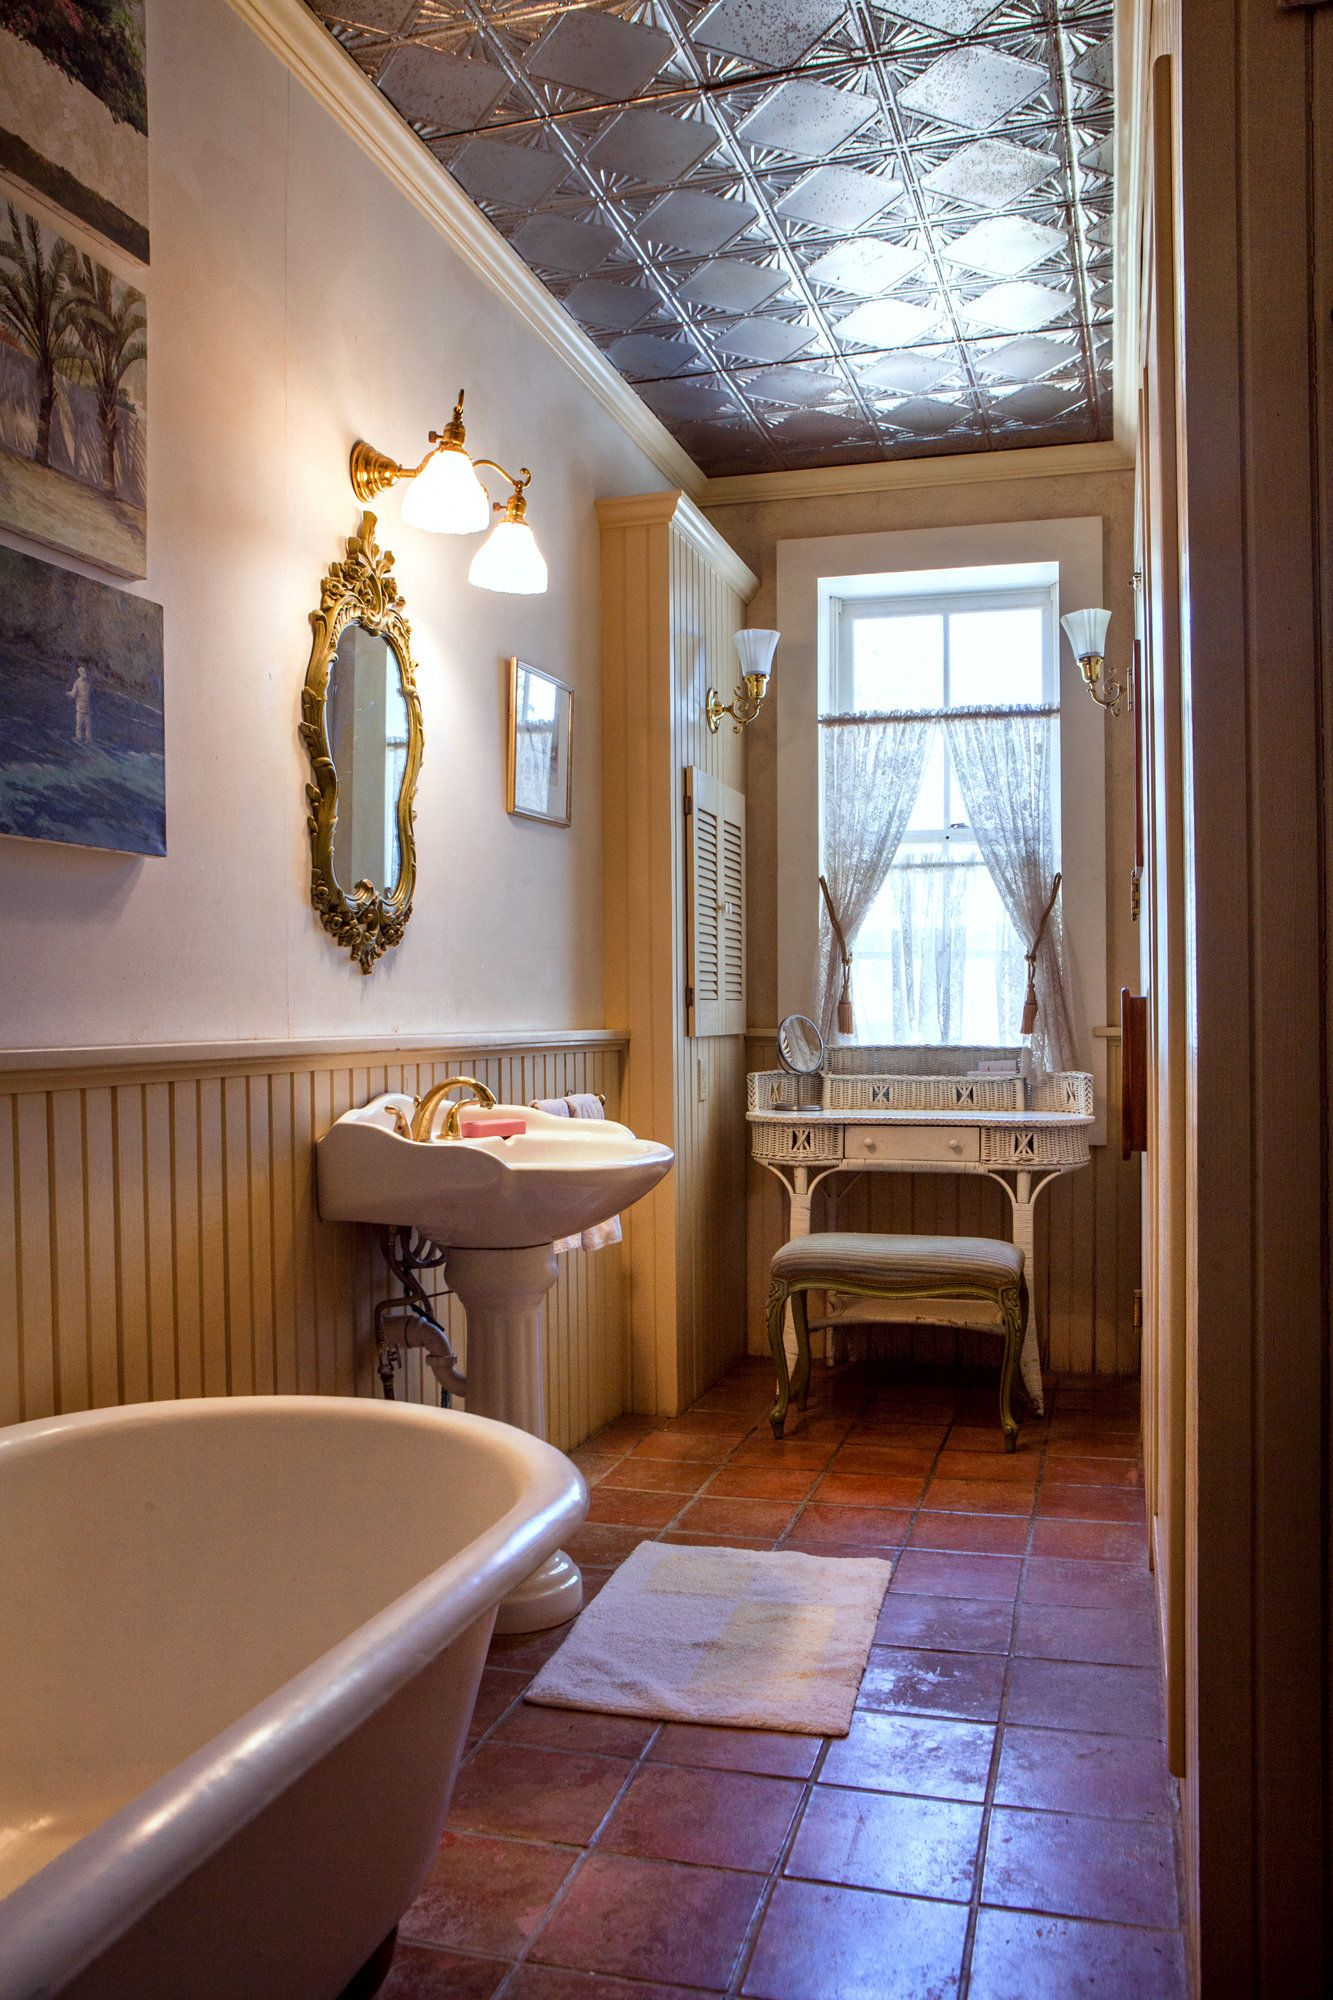 A bathroom in an 1878 adobe home in New Mexico has a claw